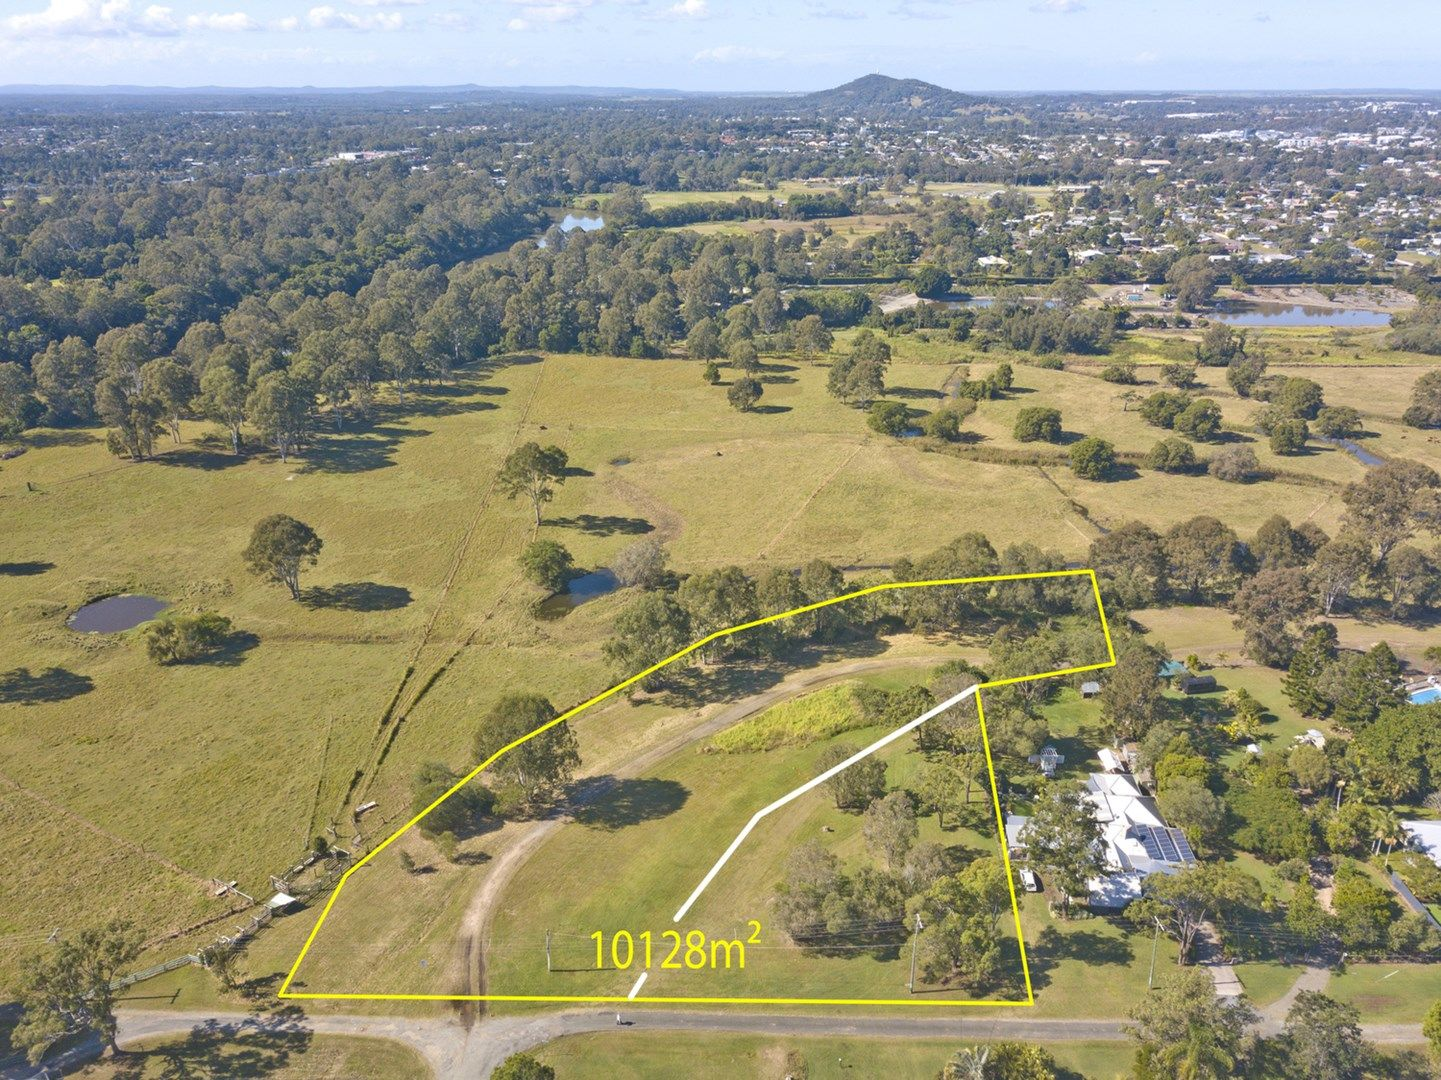 119-123 Holmview Road, Beenleigh QLD 4207, Image 0